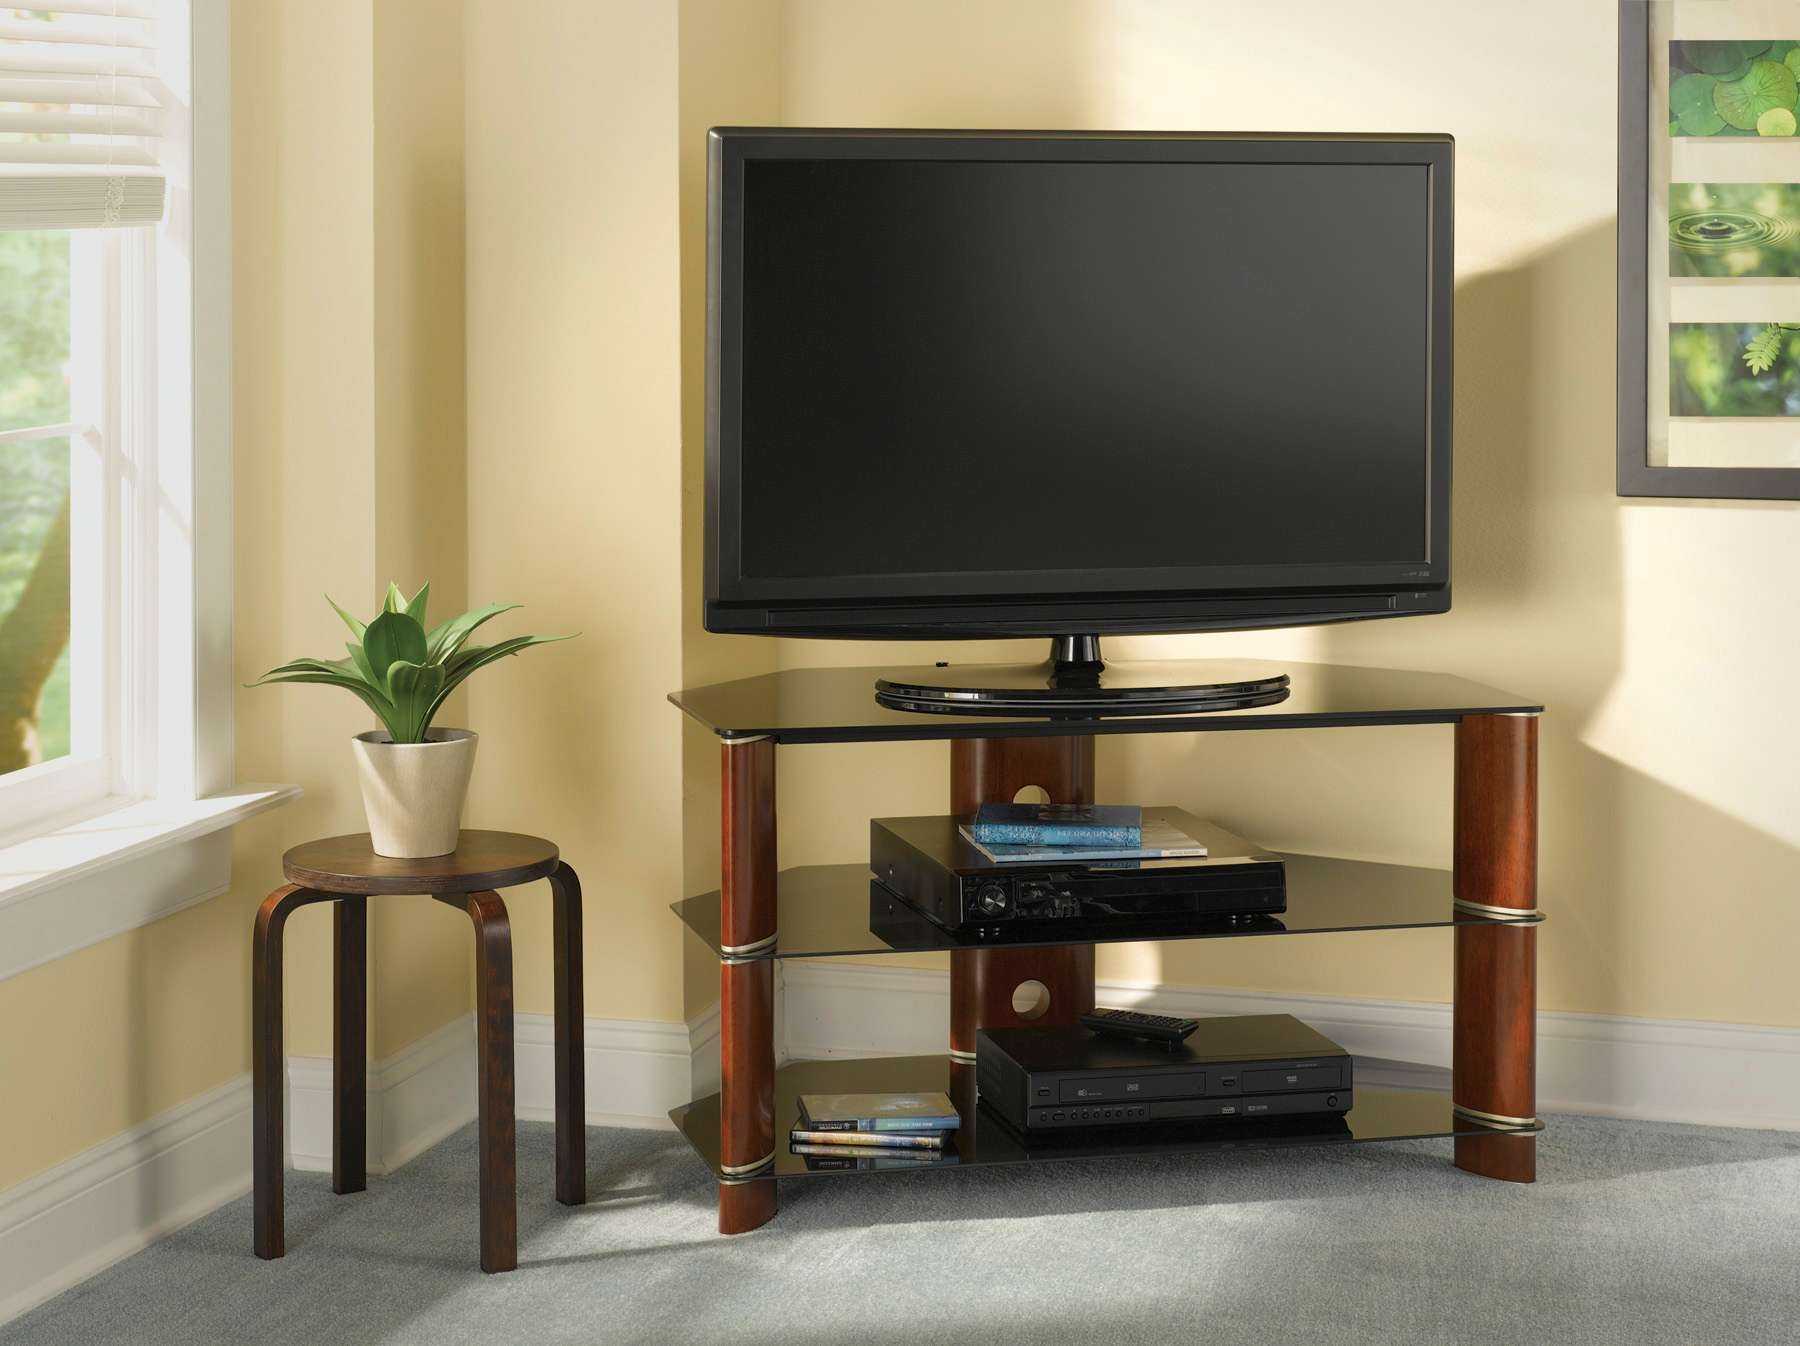 Outstanding Modern Corner Tv Stand And Contemporary Trends Images With Regard To Tv Stands For Corners (View 16 of 20)